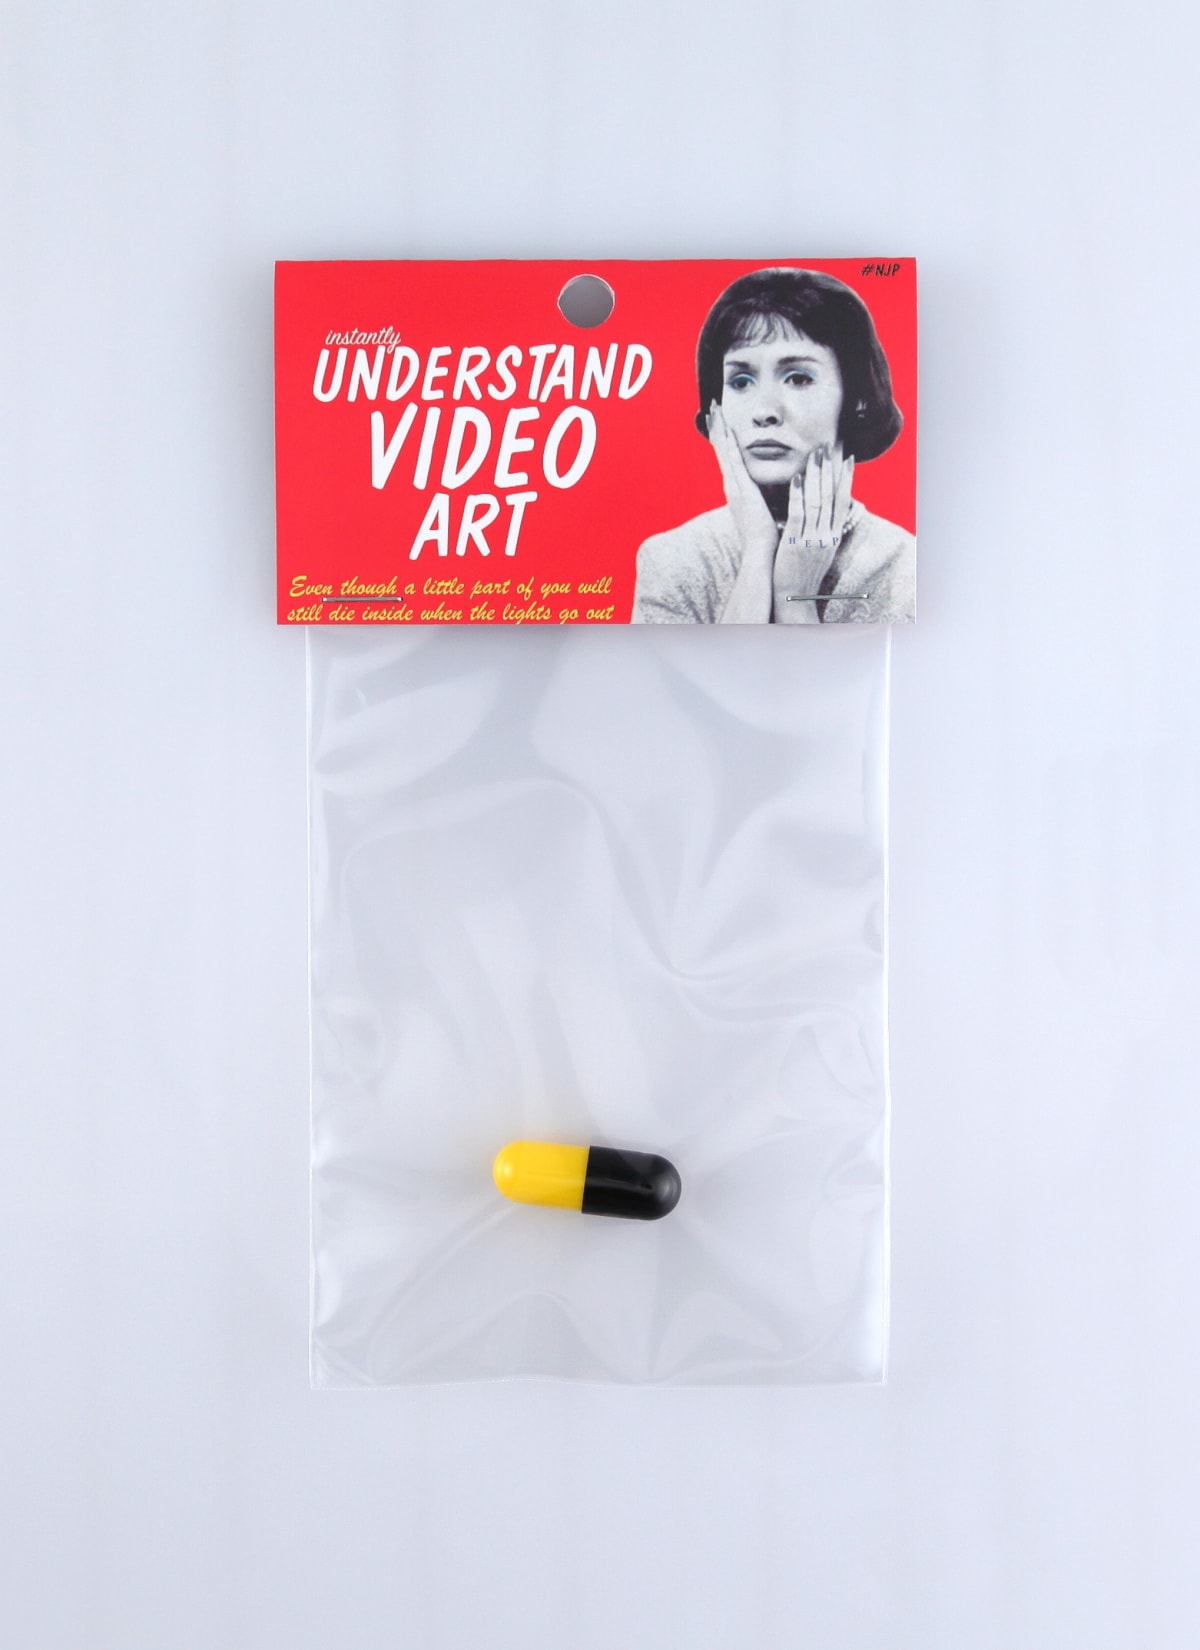 Understand video art